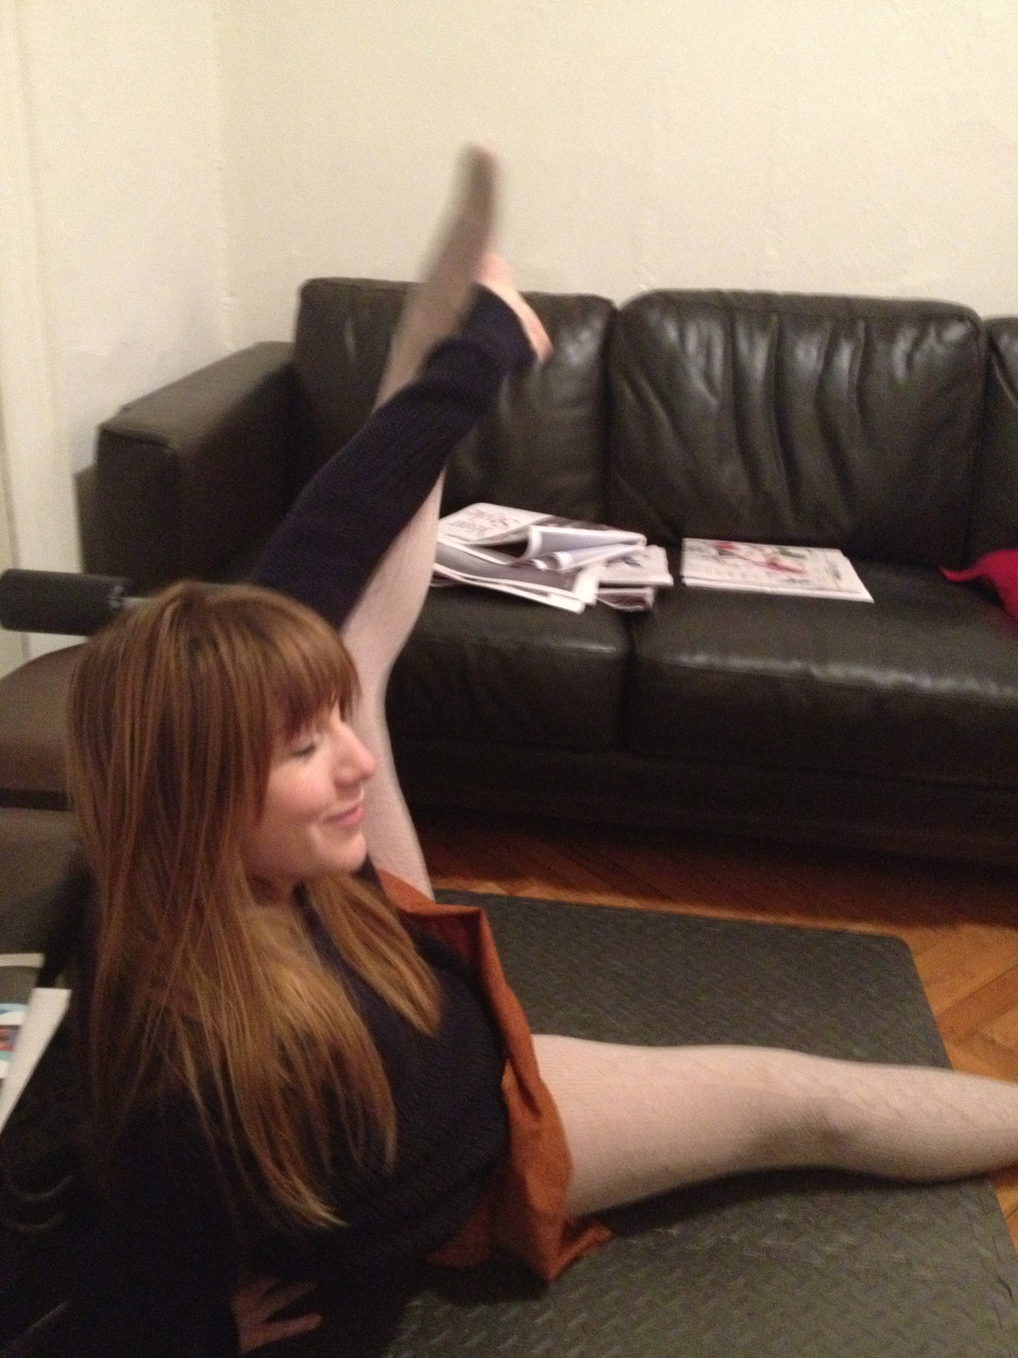 im either stretching or doing some kind of choreography in my living room haha